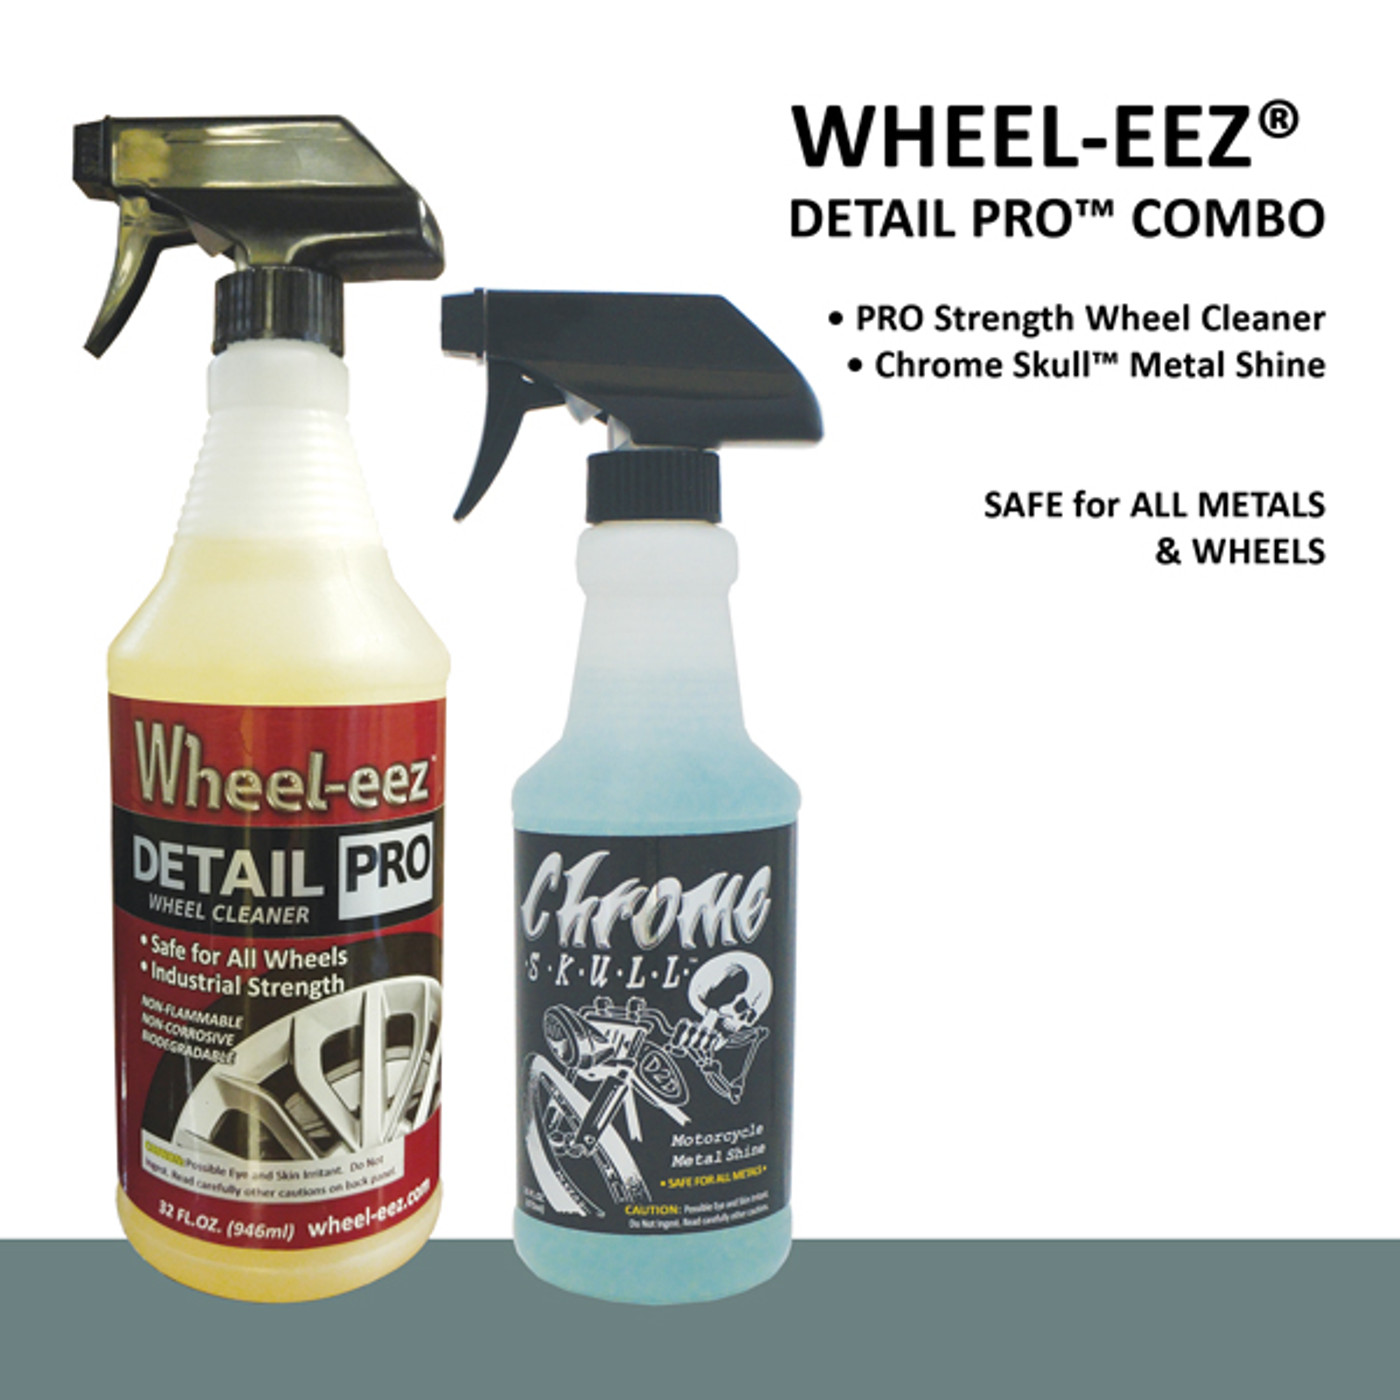 Get the Best of Both!  Wheel-eez® Detail Pro™ our Best Wheel Cleaner &  Wheel-eez® Chrome Skull™ Our New Metal Shine!  These cleaners are Professional Strength yet Safe to handle.  Environmentally Friendly & Biodegradable.  Buy together & Save! Low flat rate shipping on this combo!